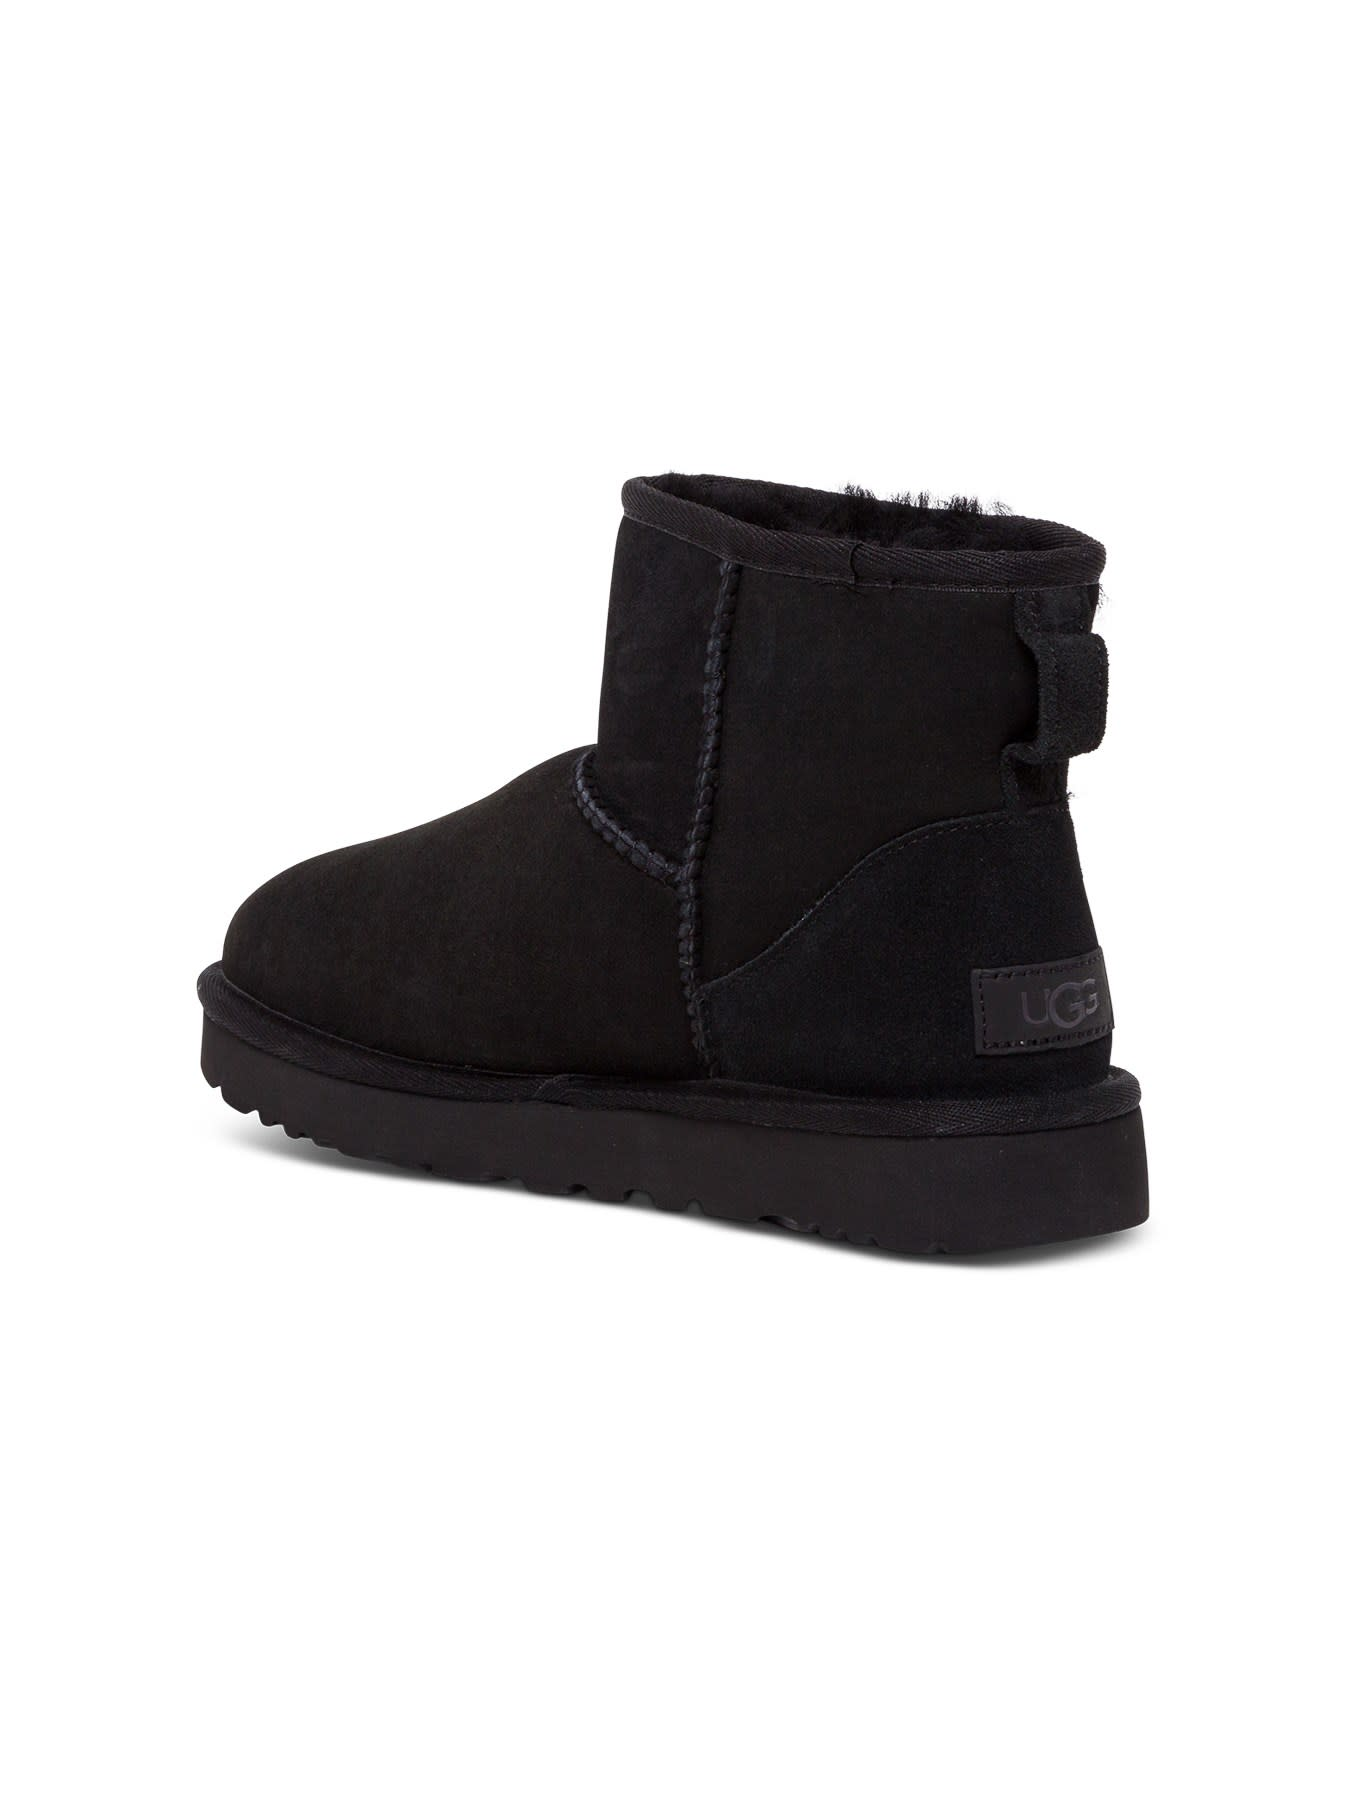 Buy UGG Classic Low Boots In Suede Leather online, shop UGG shoes with free shipping